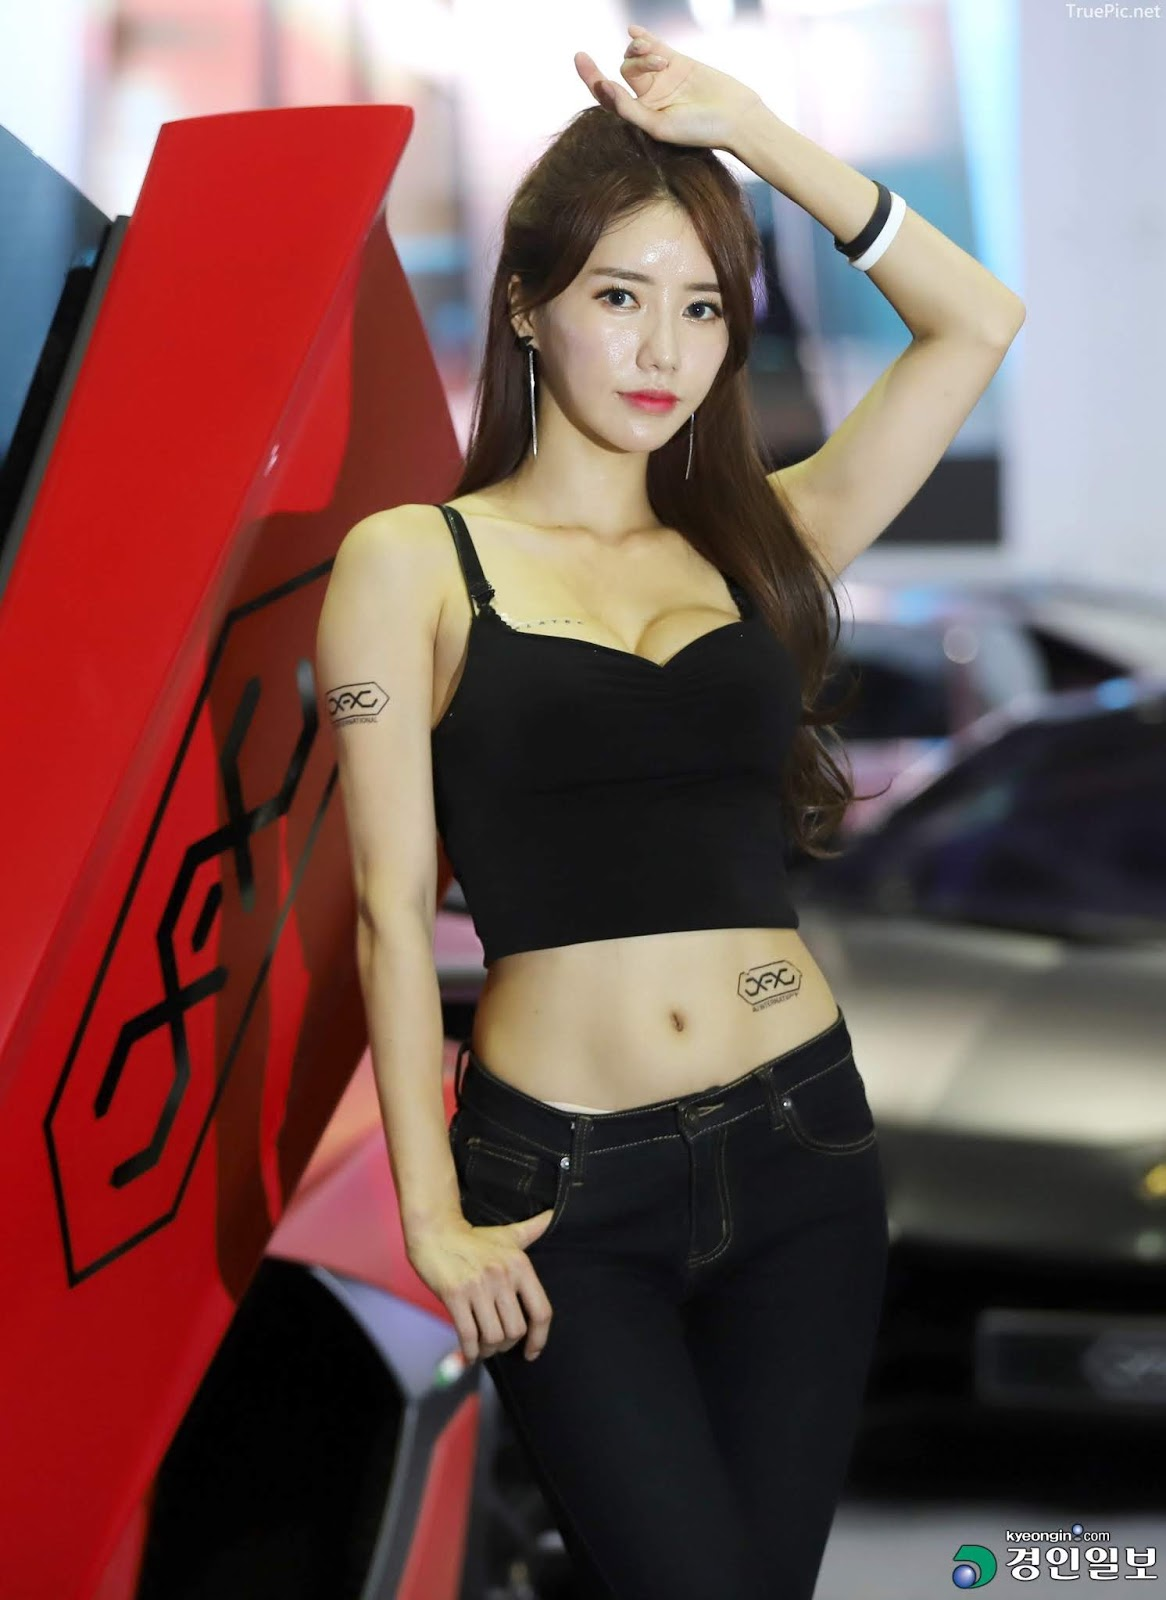 Korean Racing Model - Im Sola - Seoul Auto Salon 2019 - Picture 1